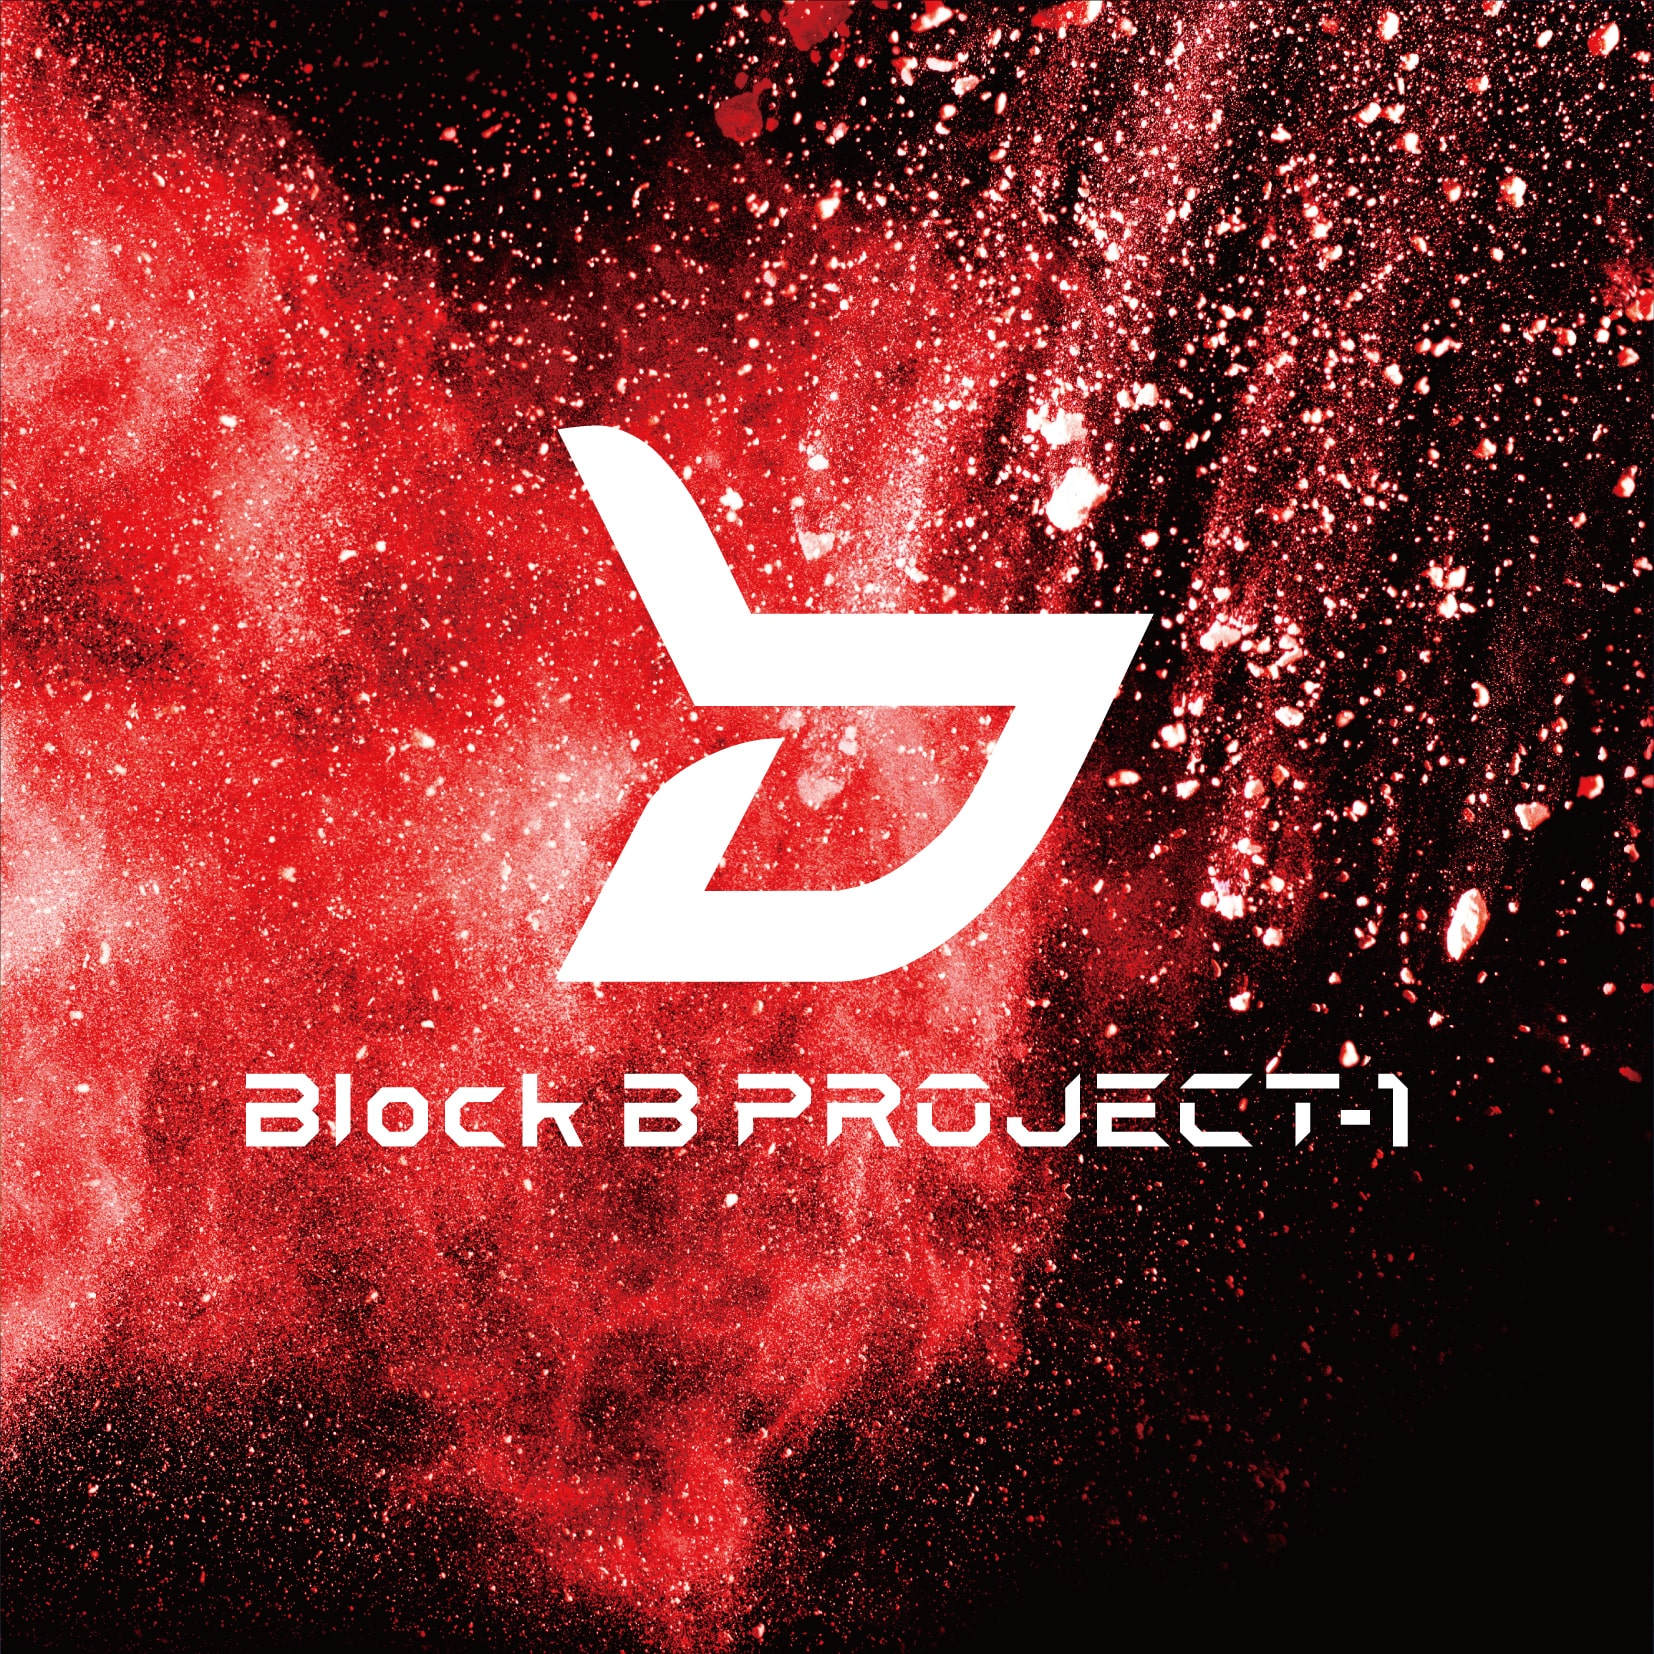 『PROJECT-1 EP』 Block B PROJECT-1